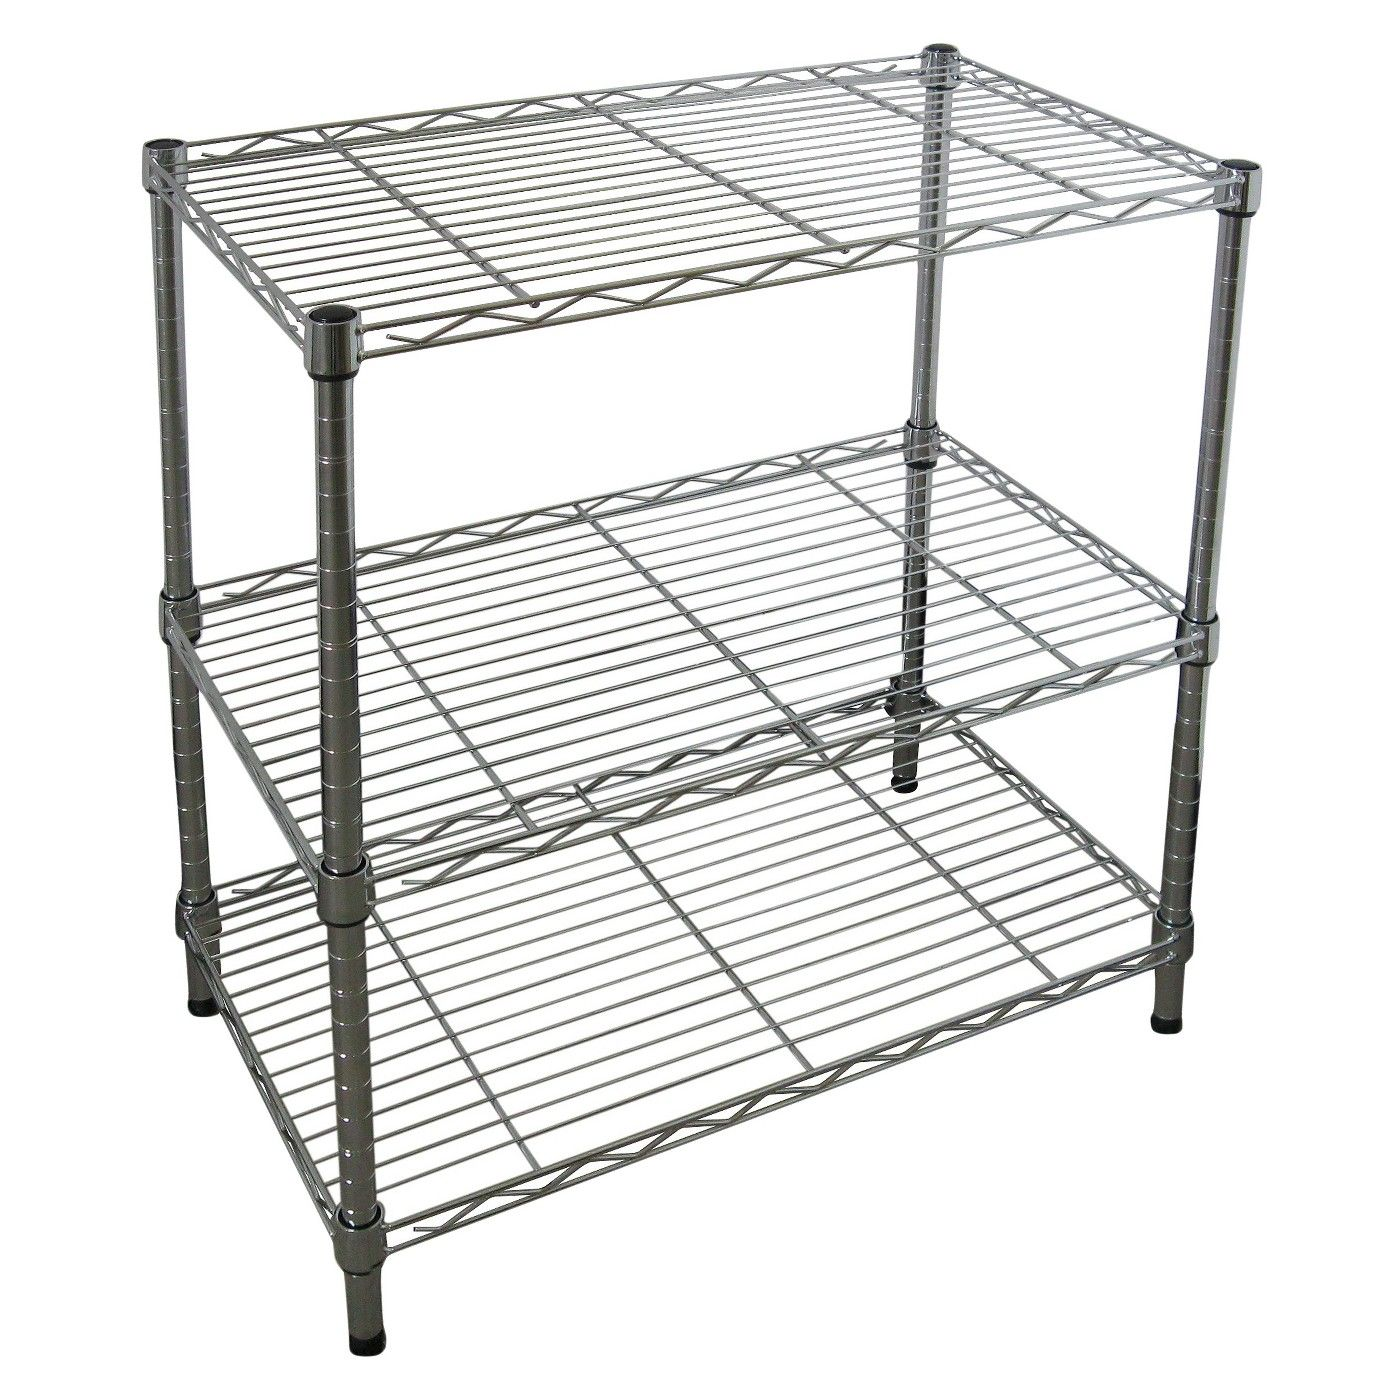 Adjustable 3 Tier Wire Shelving  Chrome  Room Essentials